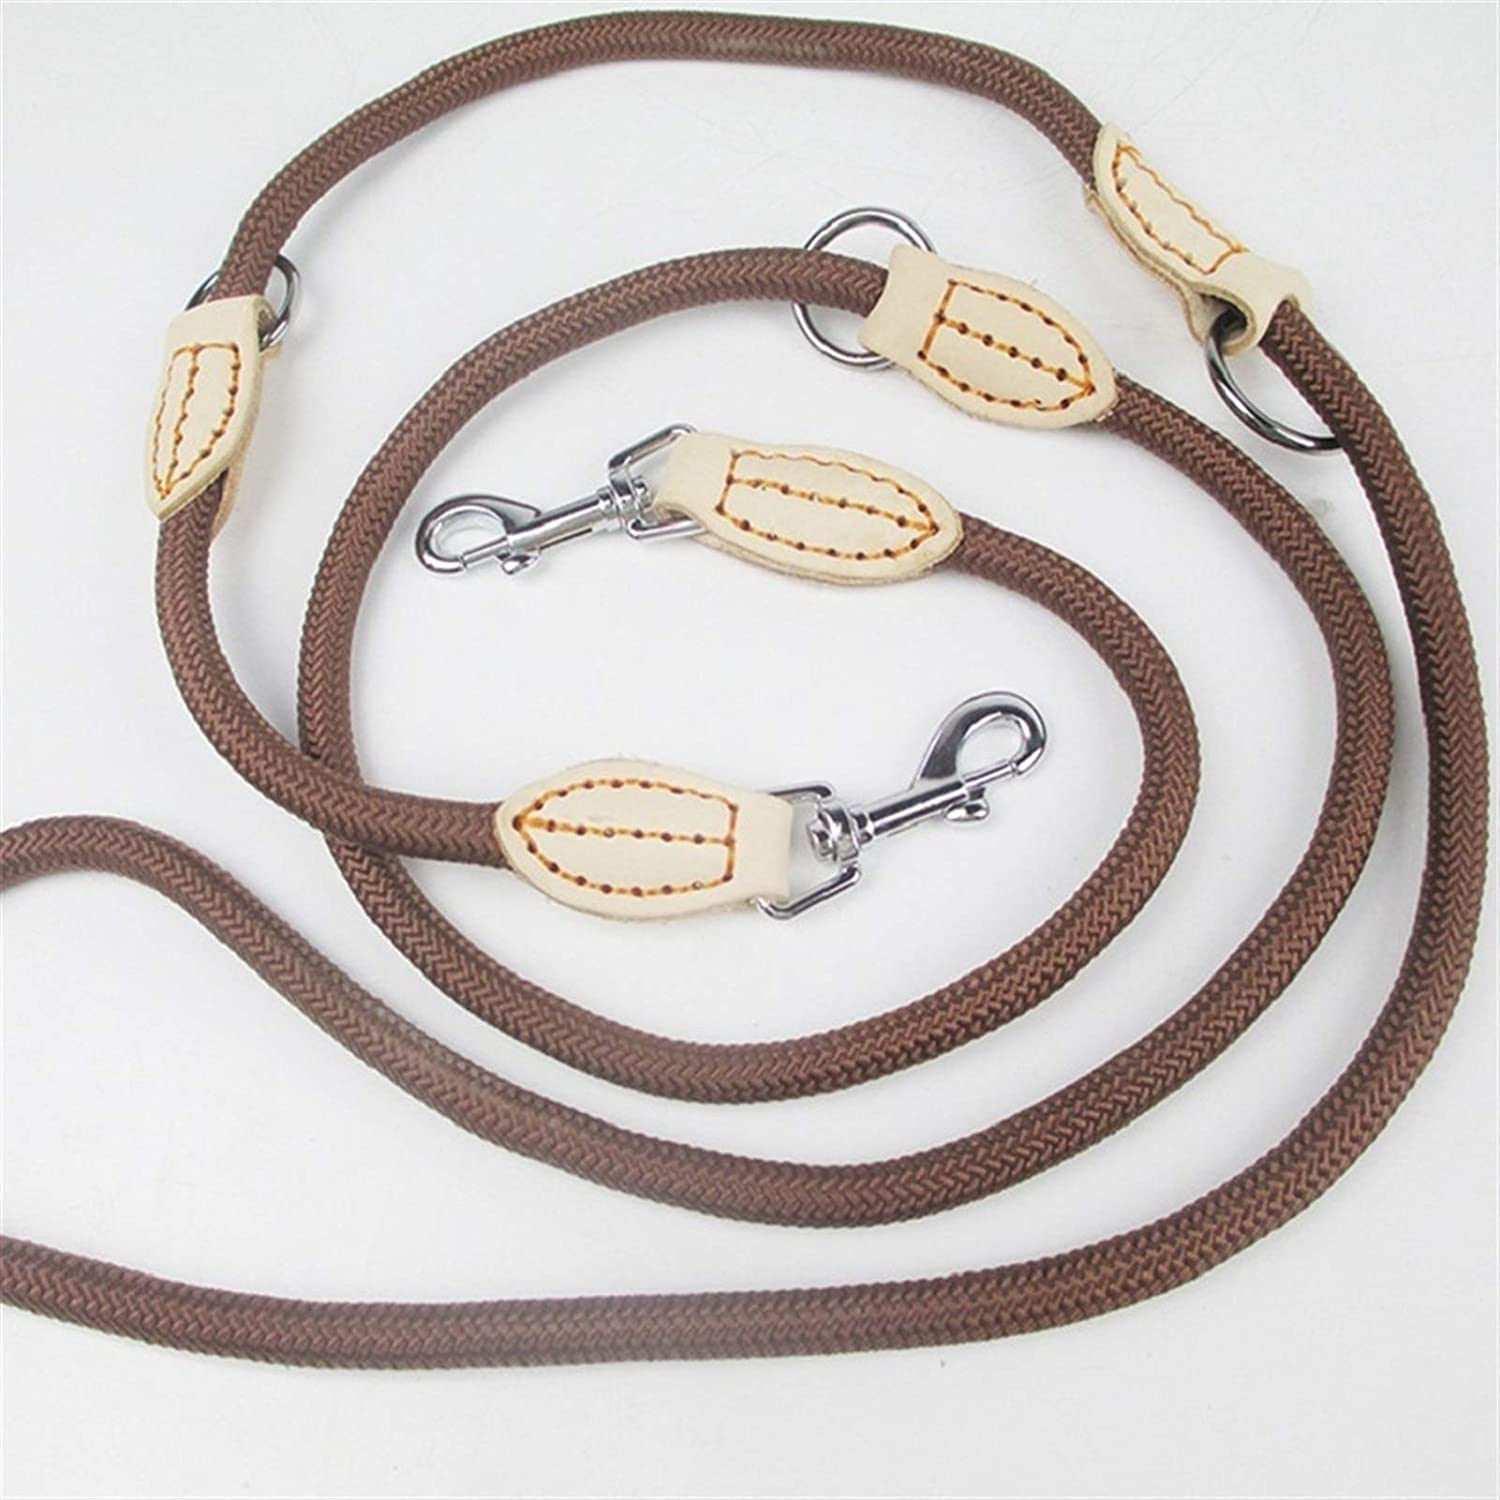 High quality new Primal Pet Recommended Dog Leash Multifunction Leashes Nylon Two Double